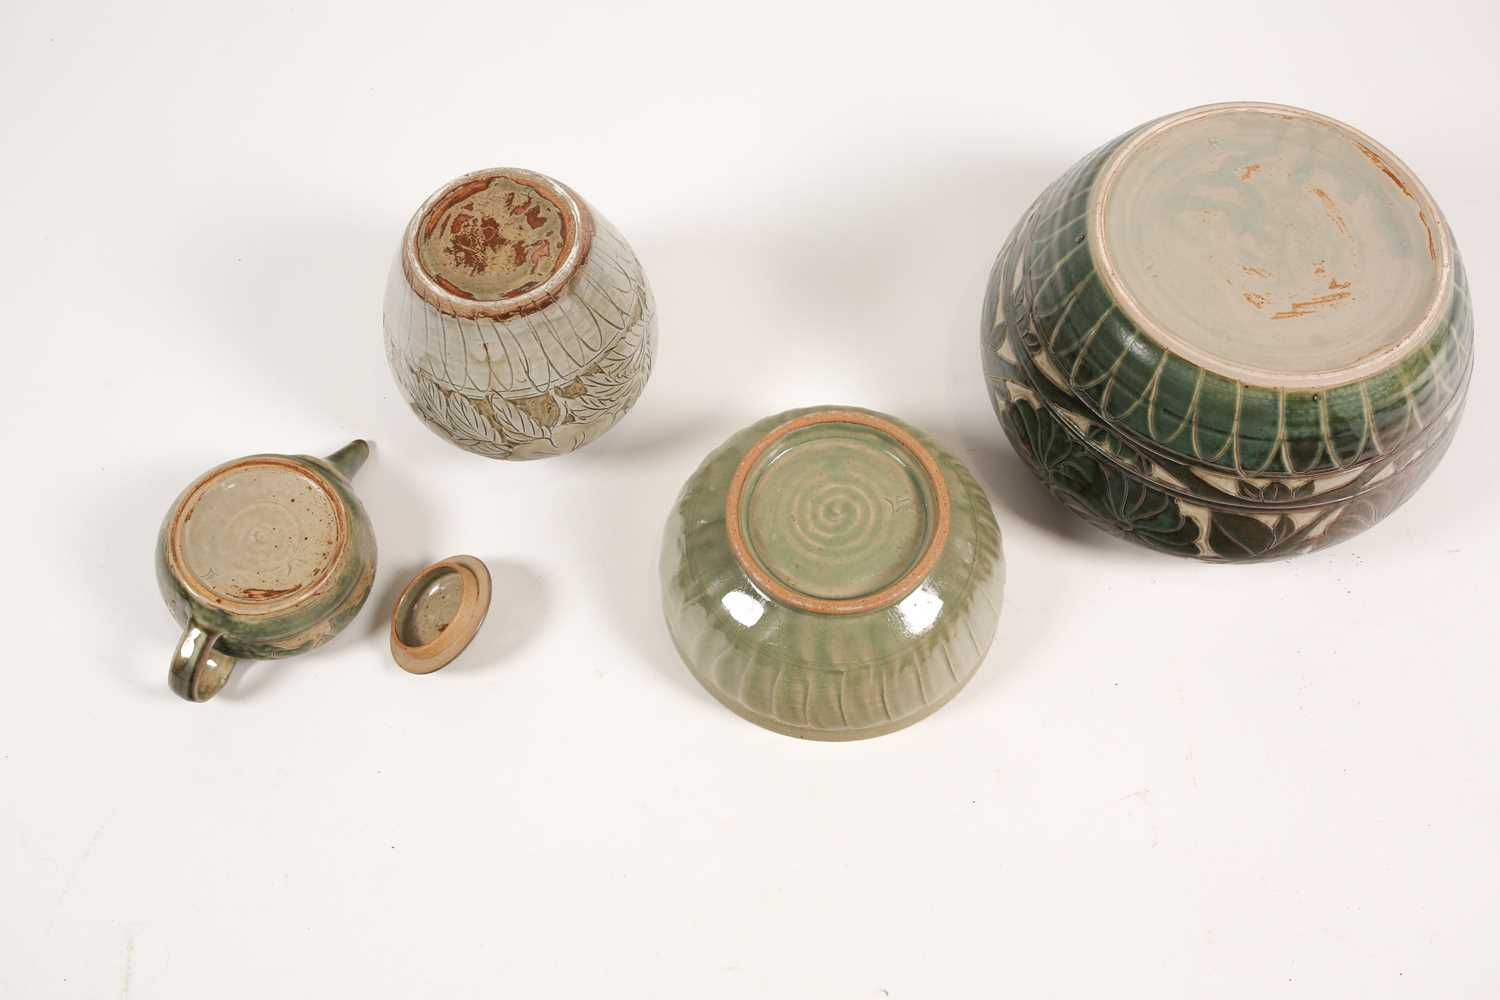 Four pieces of British studio pottery, comprising a jardiniere (19 cm high x 31 cm wide), a - Image 2 of 8